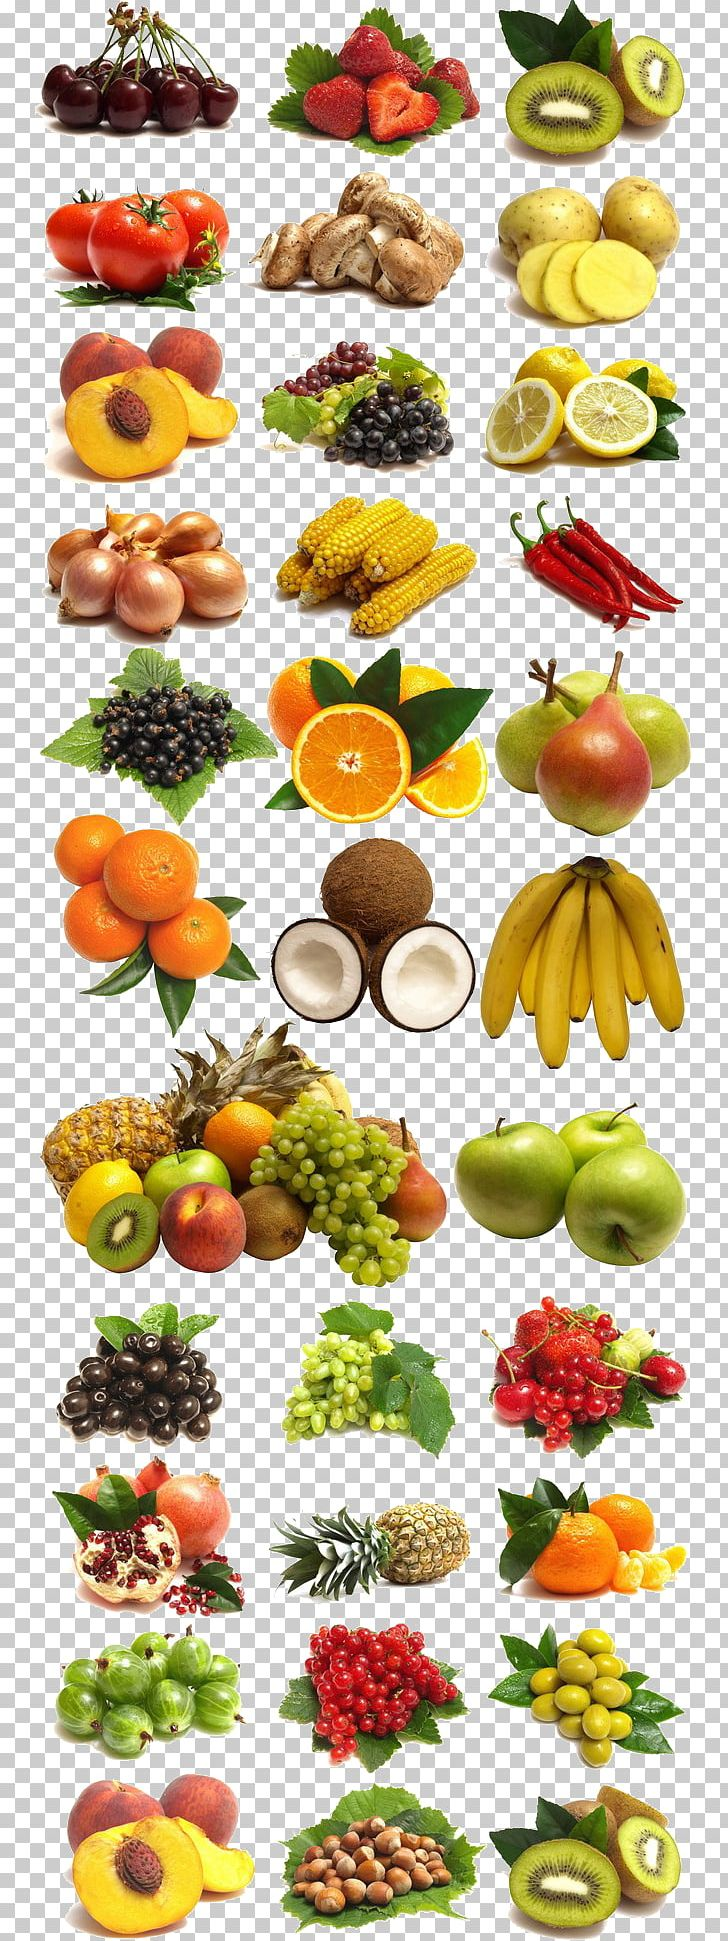 A Large Collection Of Fruits And Vegetables PNG, Clipart, Auglis, Collection, Cucumber, Diabetes Mellitus, Diabetes Mellitus Type 2 Free PNG Download